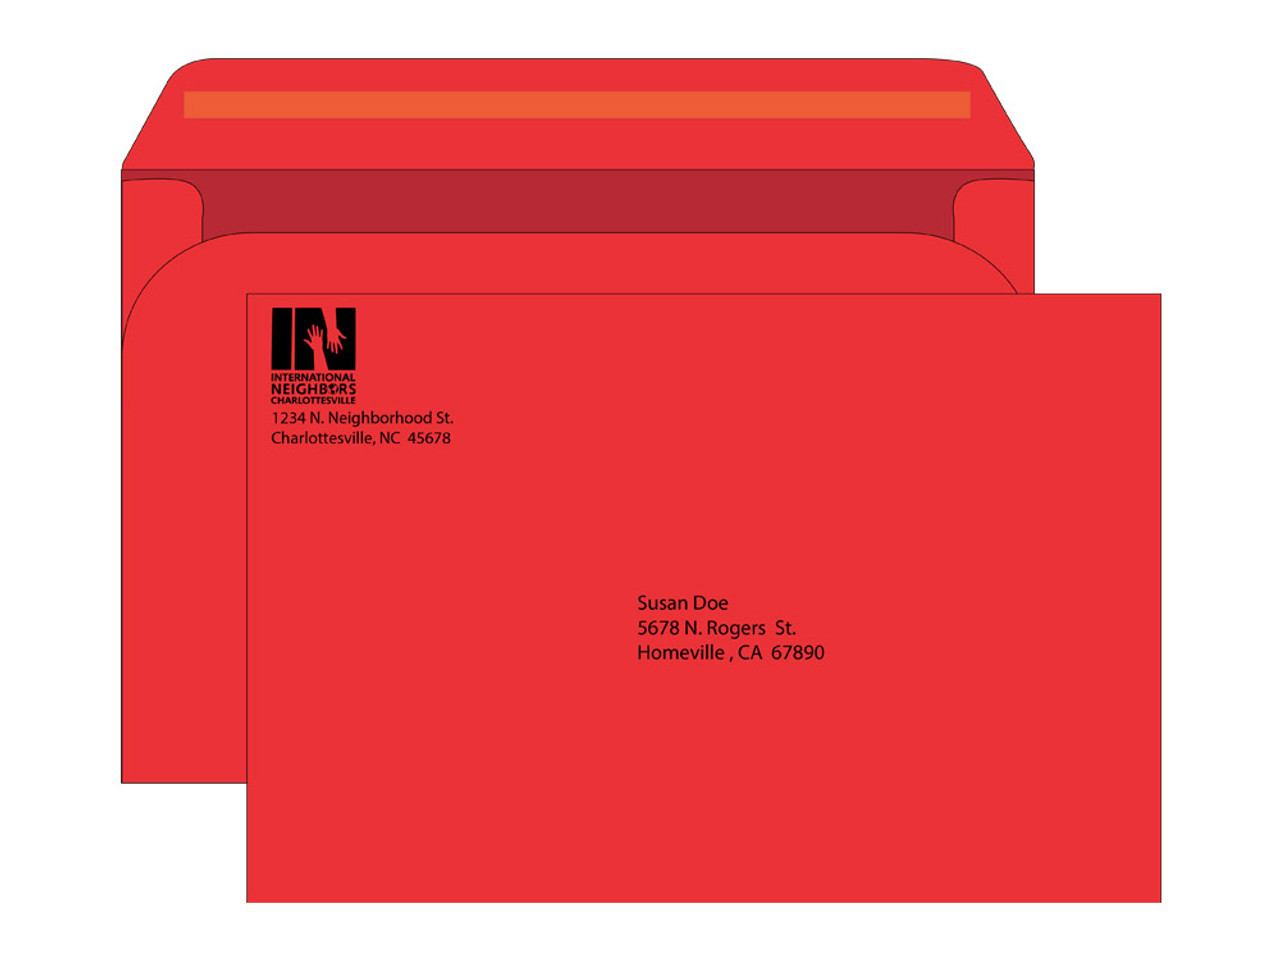 6x9 booklet envelopes - EN1094